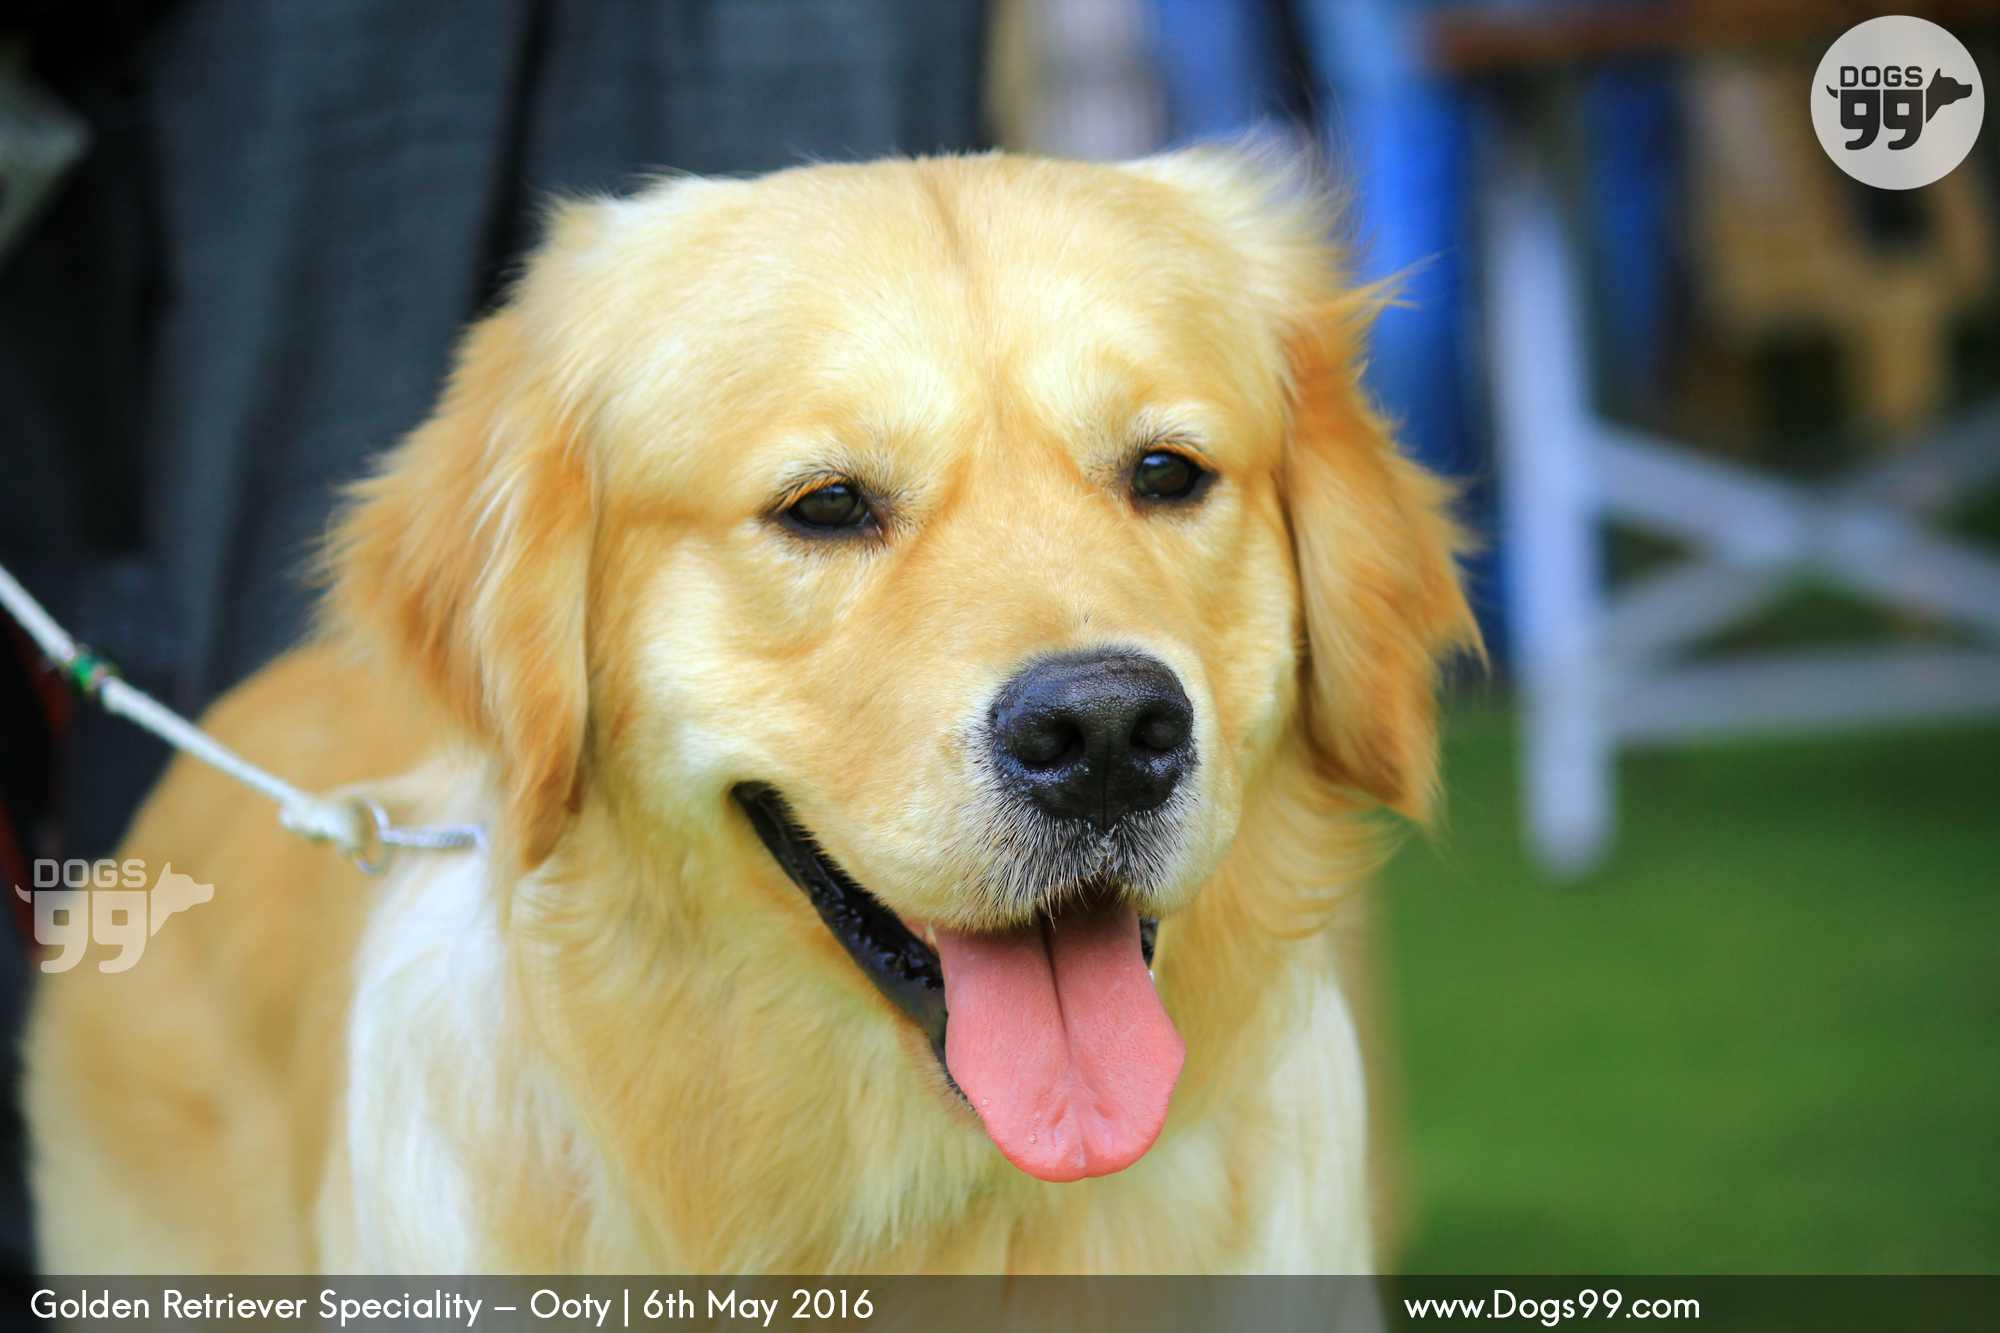 Golden Retriever Speciality Ooty 2016 95 Dog Shows